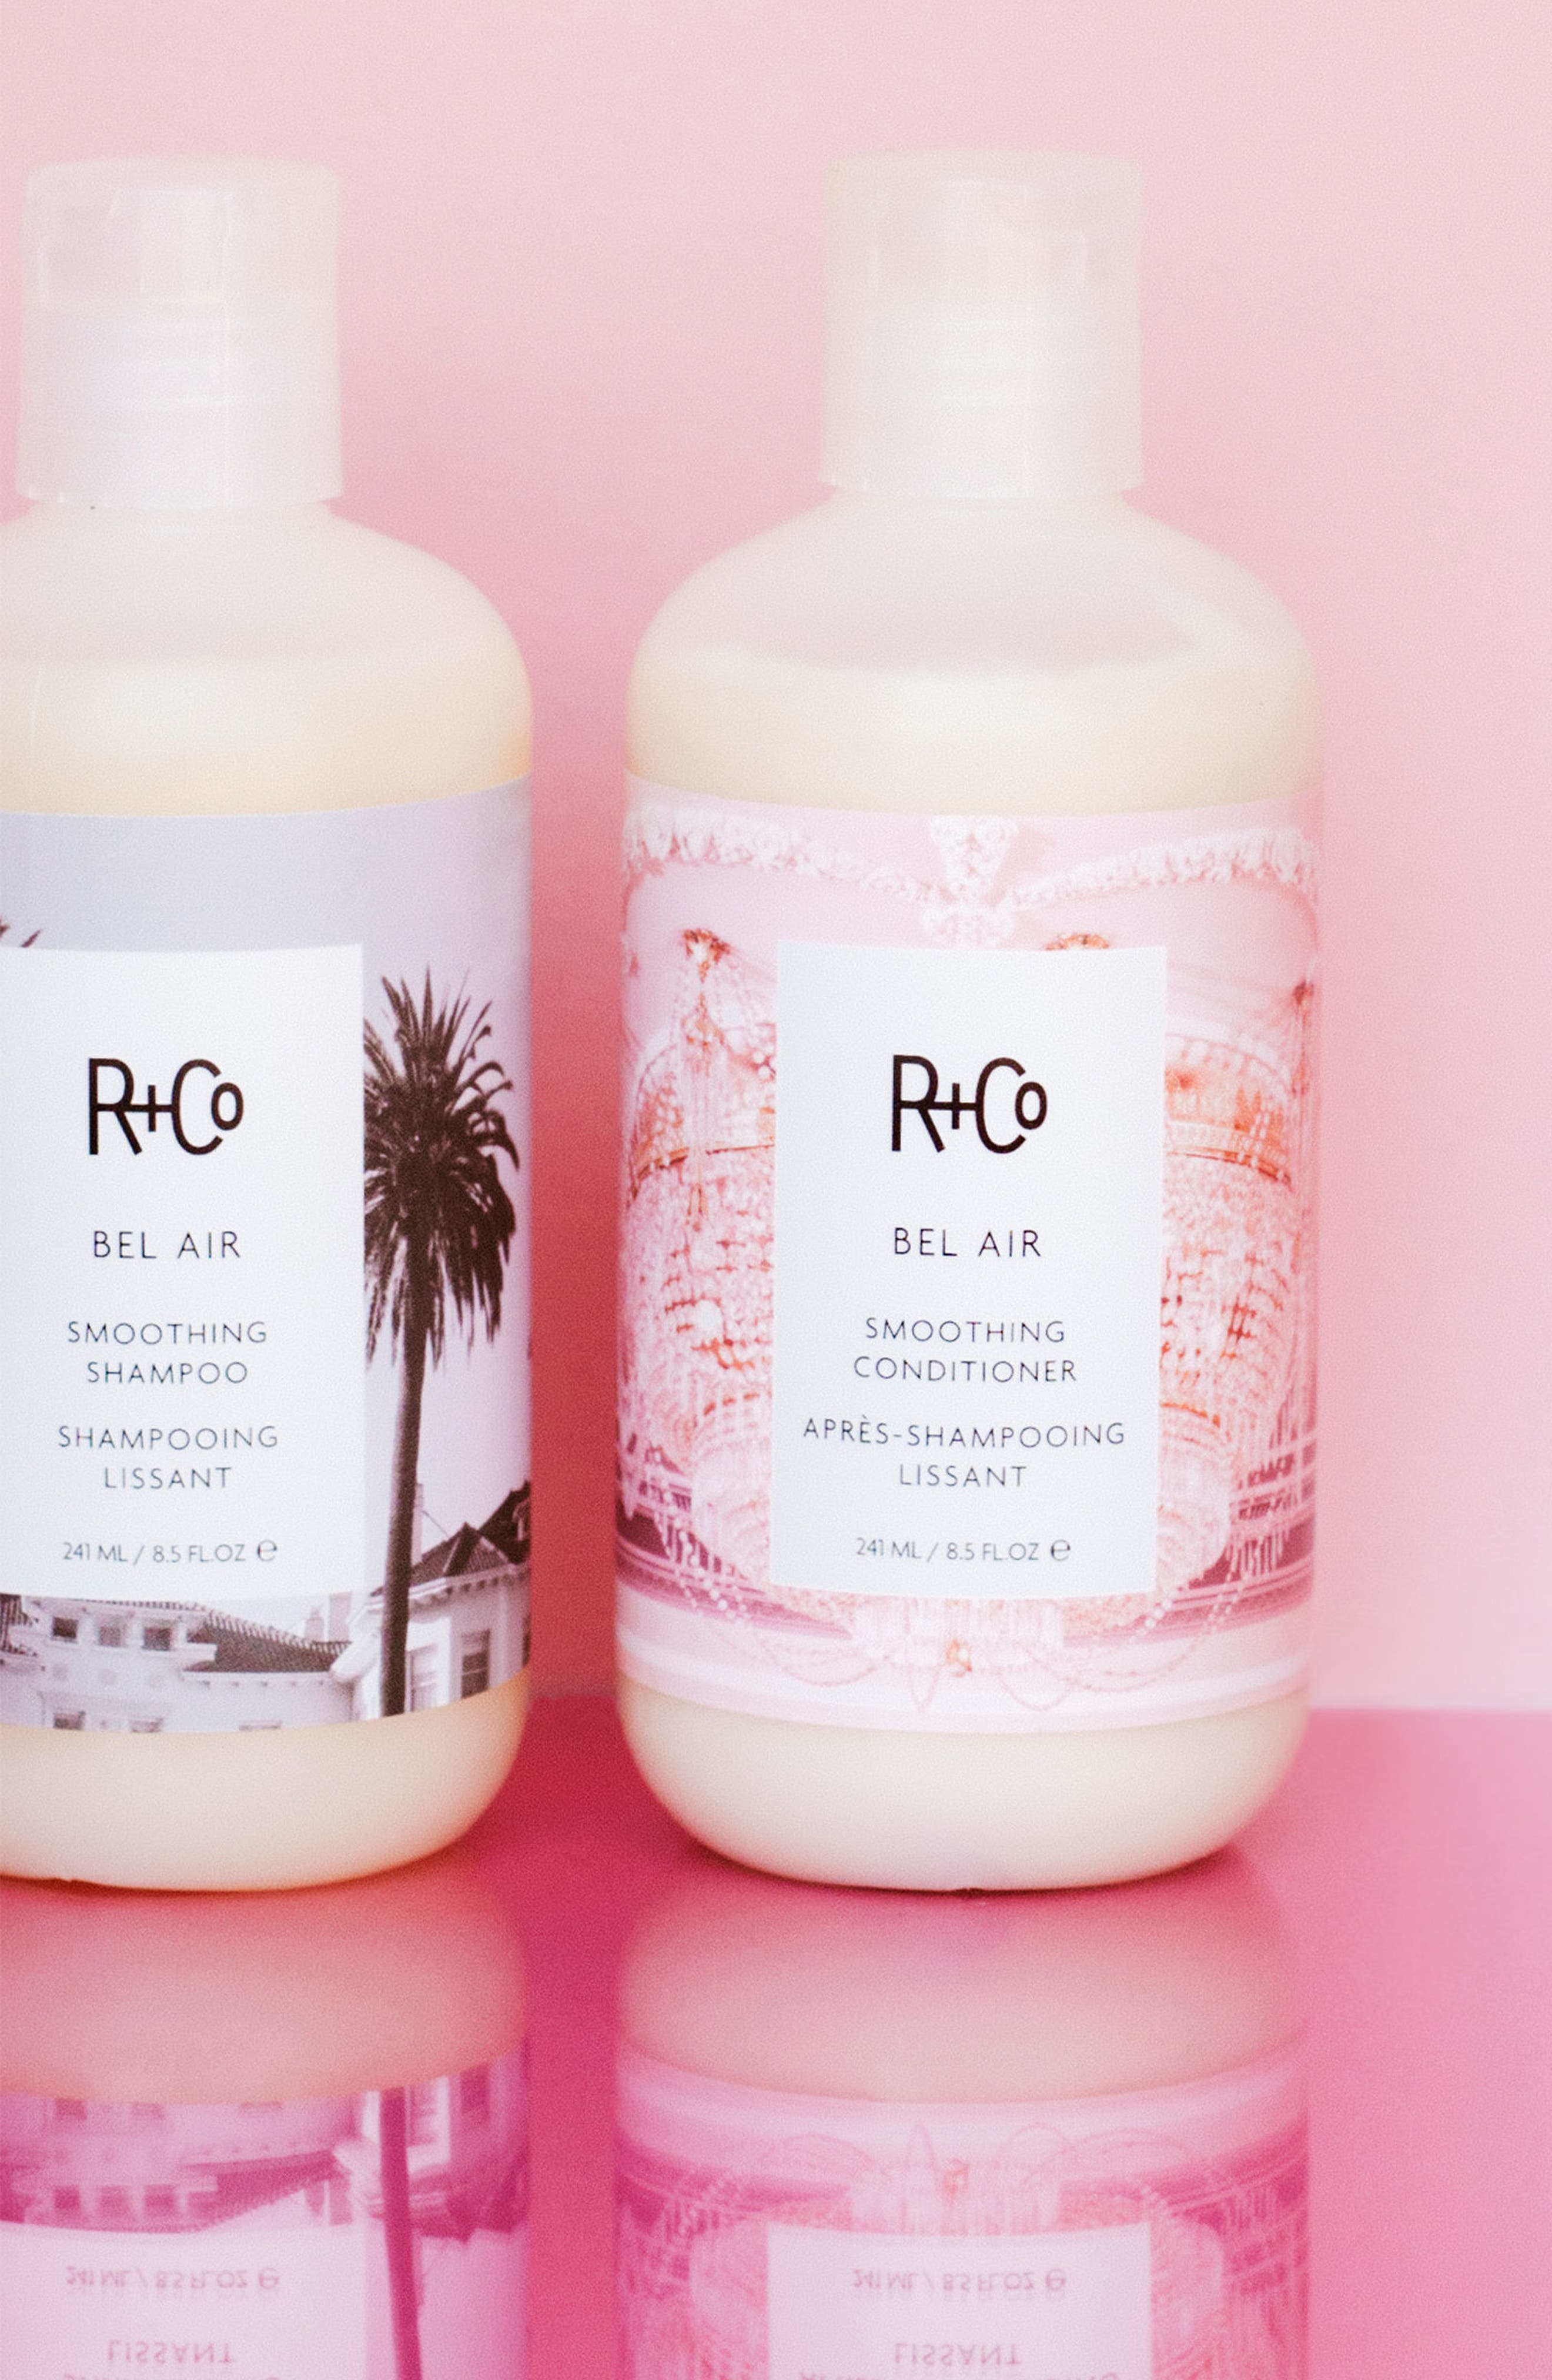 SPACE.NK.apothecary R+Co Bel Air Smoothing Shampoo,                             Alternate thumbnail 4, color,                             No Color